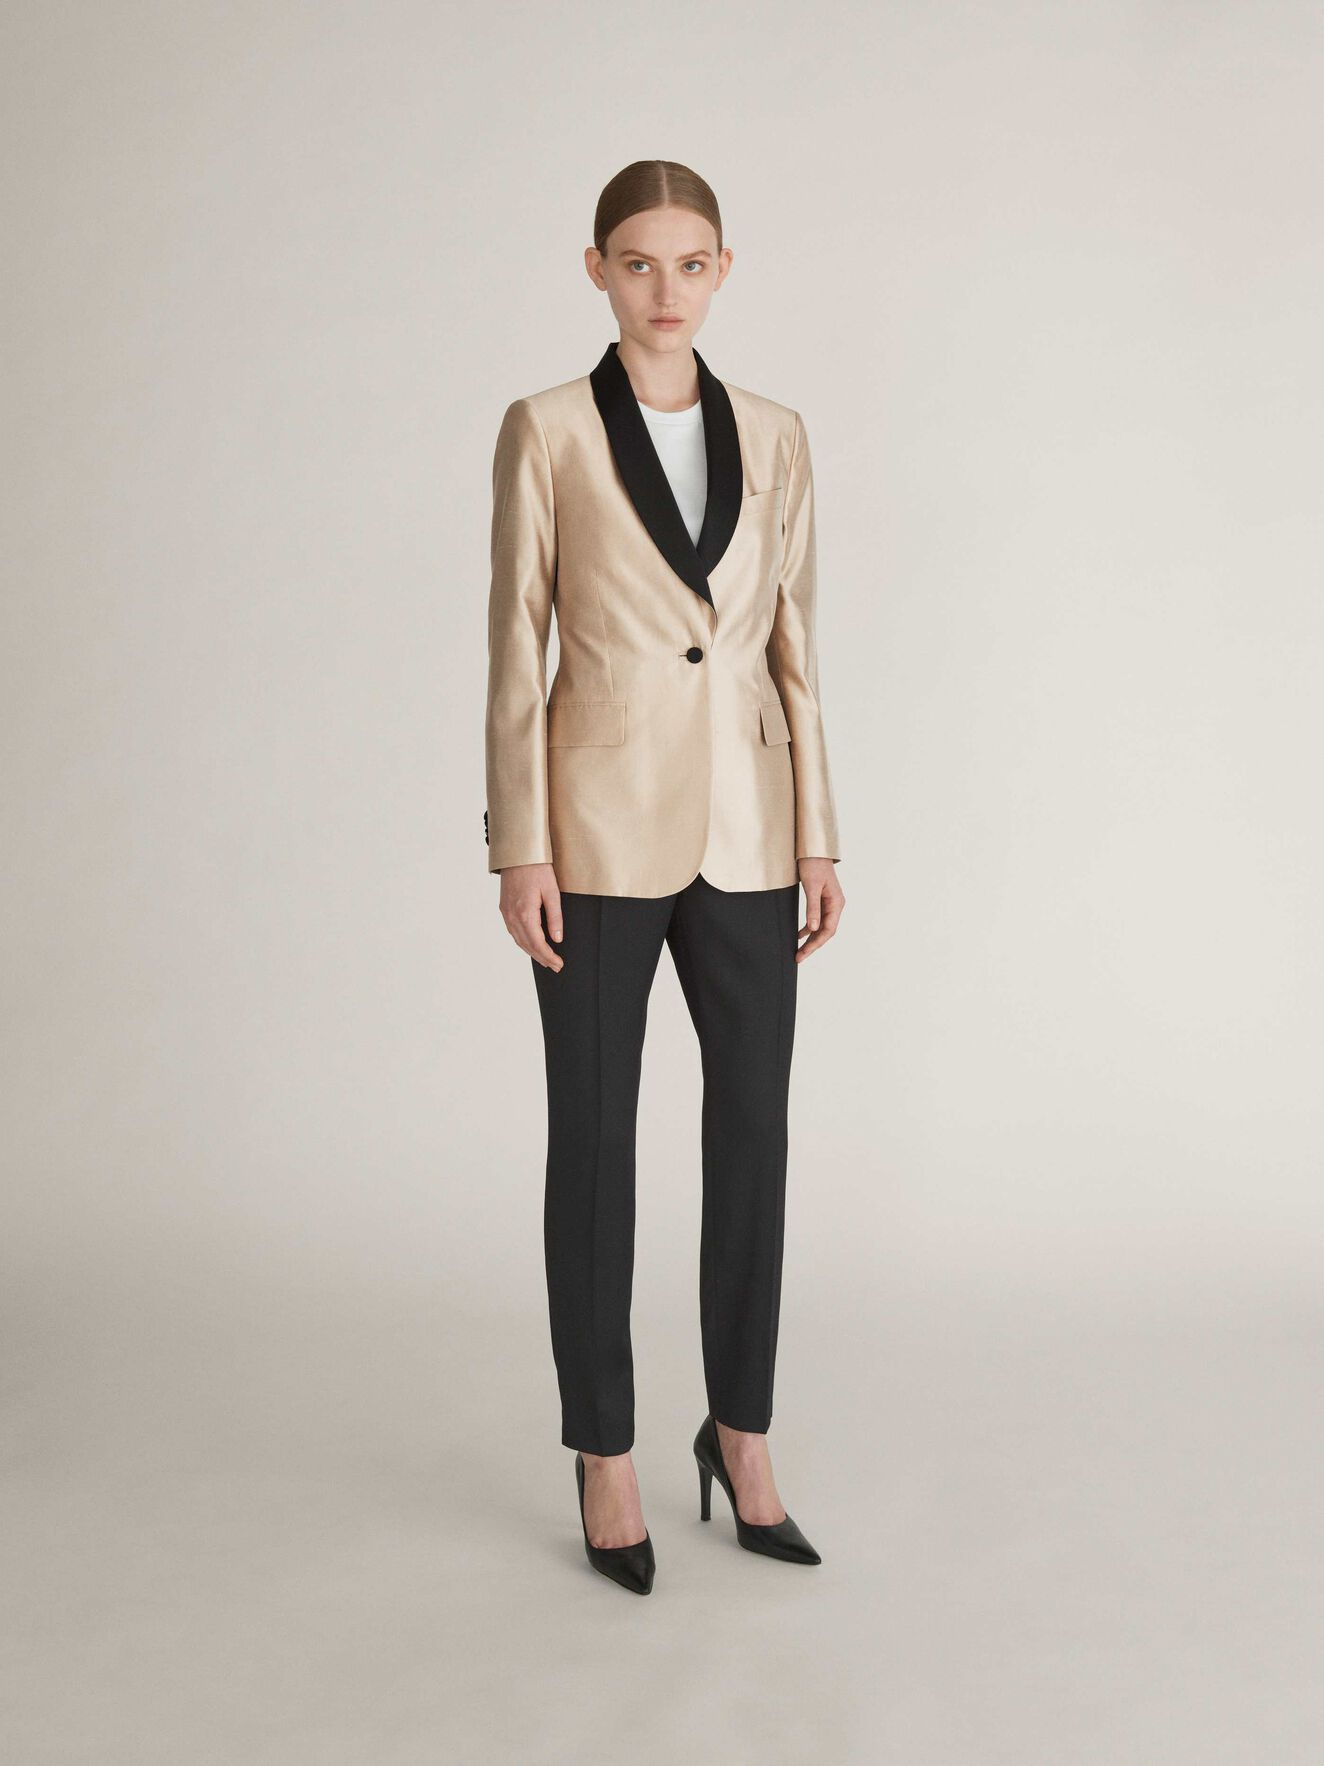 Nektar Blazer in Macchiato from Tiger of Sweden